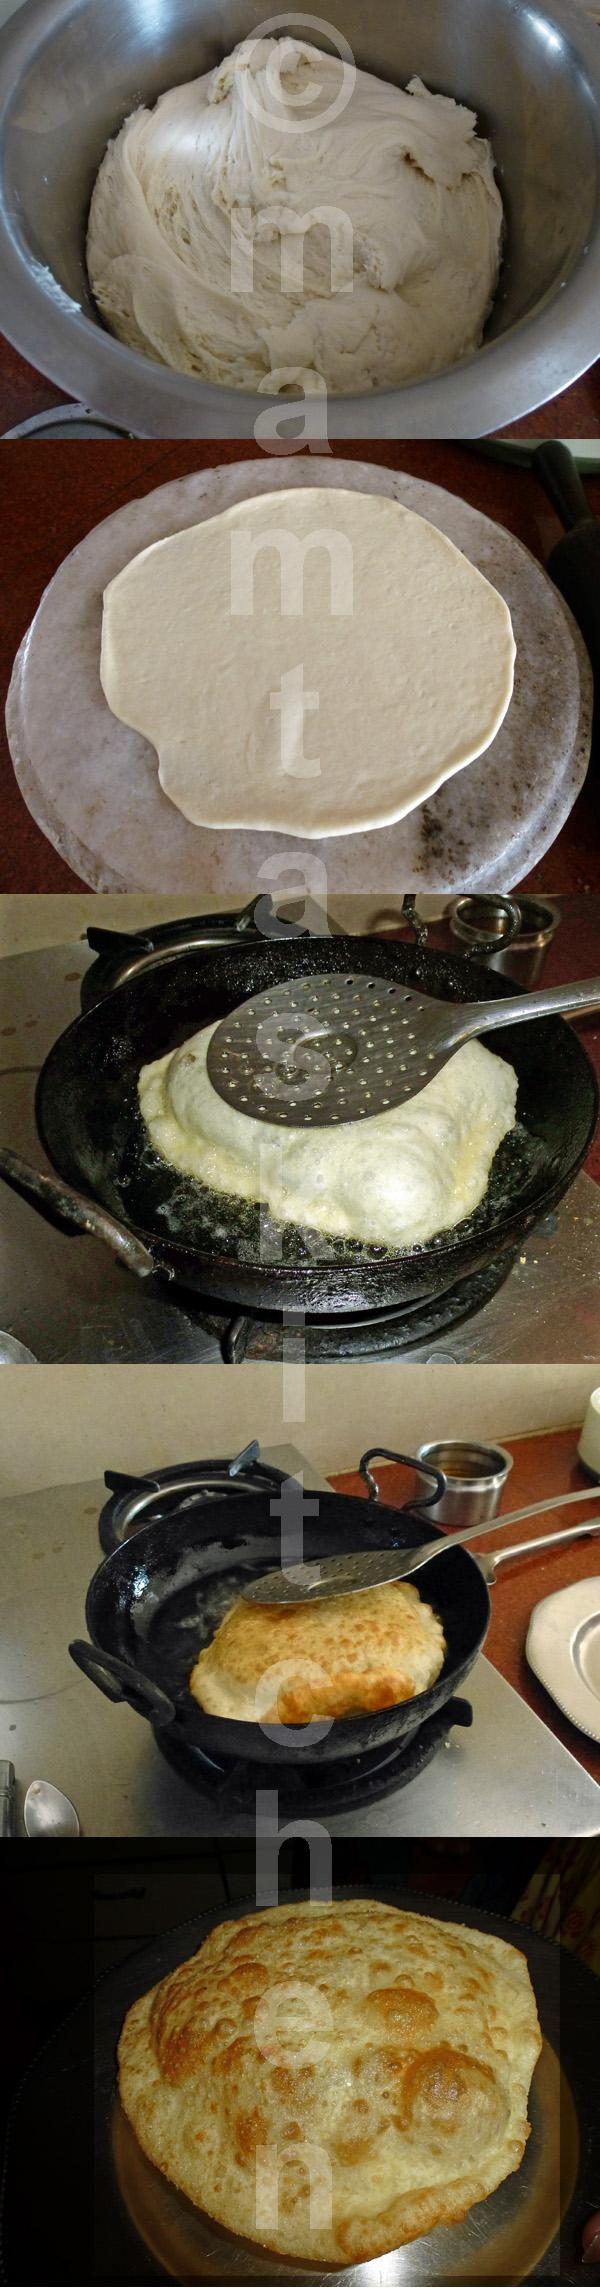 Bhatura 1, Deep Fried Indian Leavened Bread from Punjab